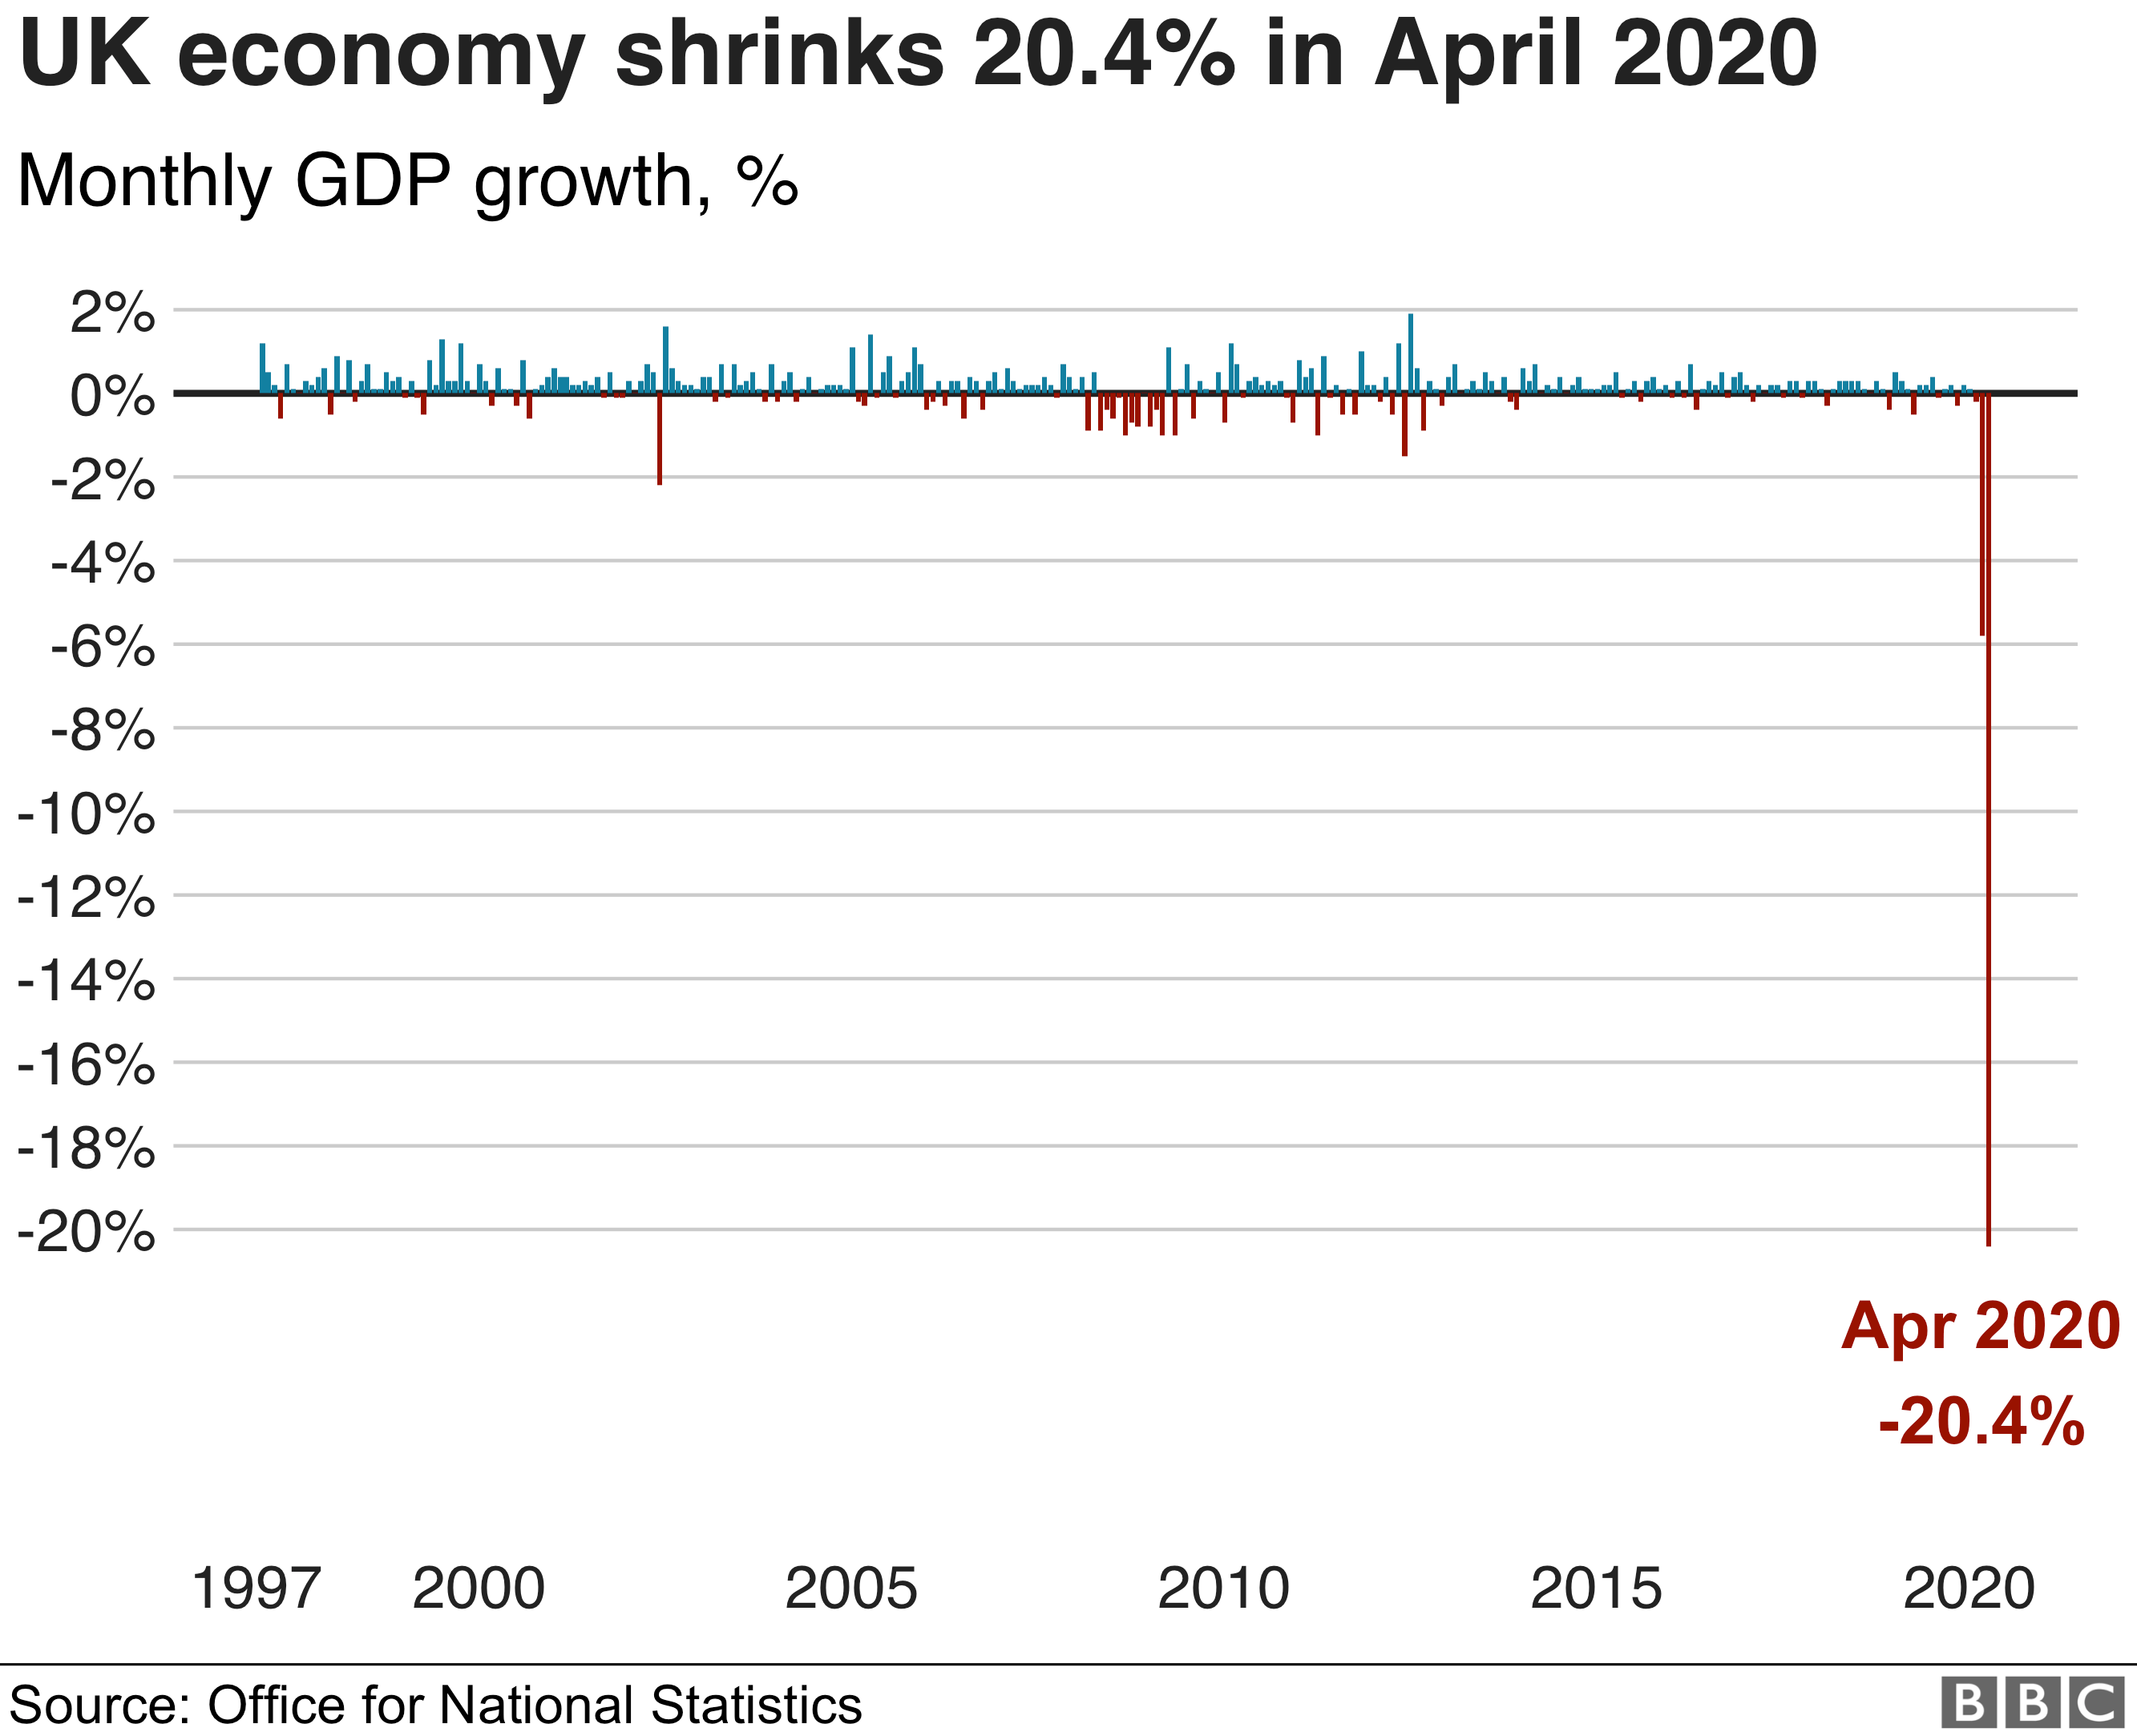 Month-on-month GDP